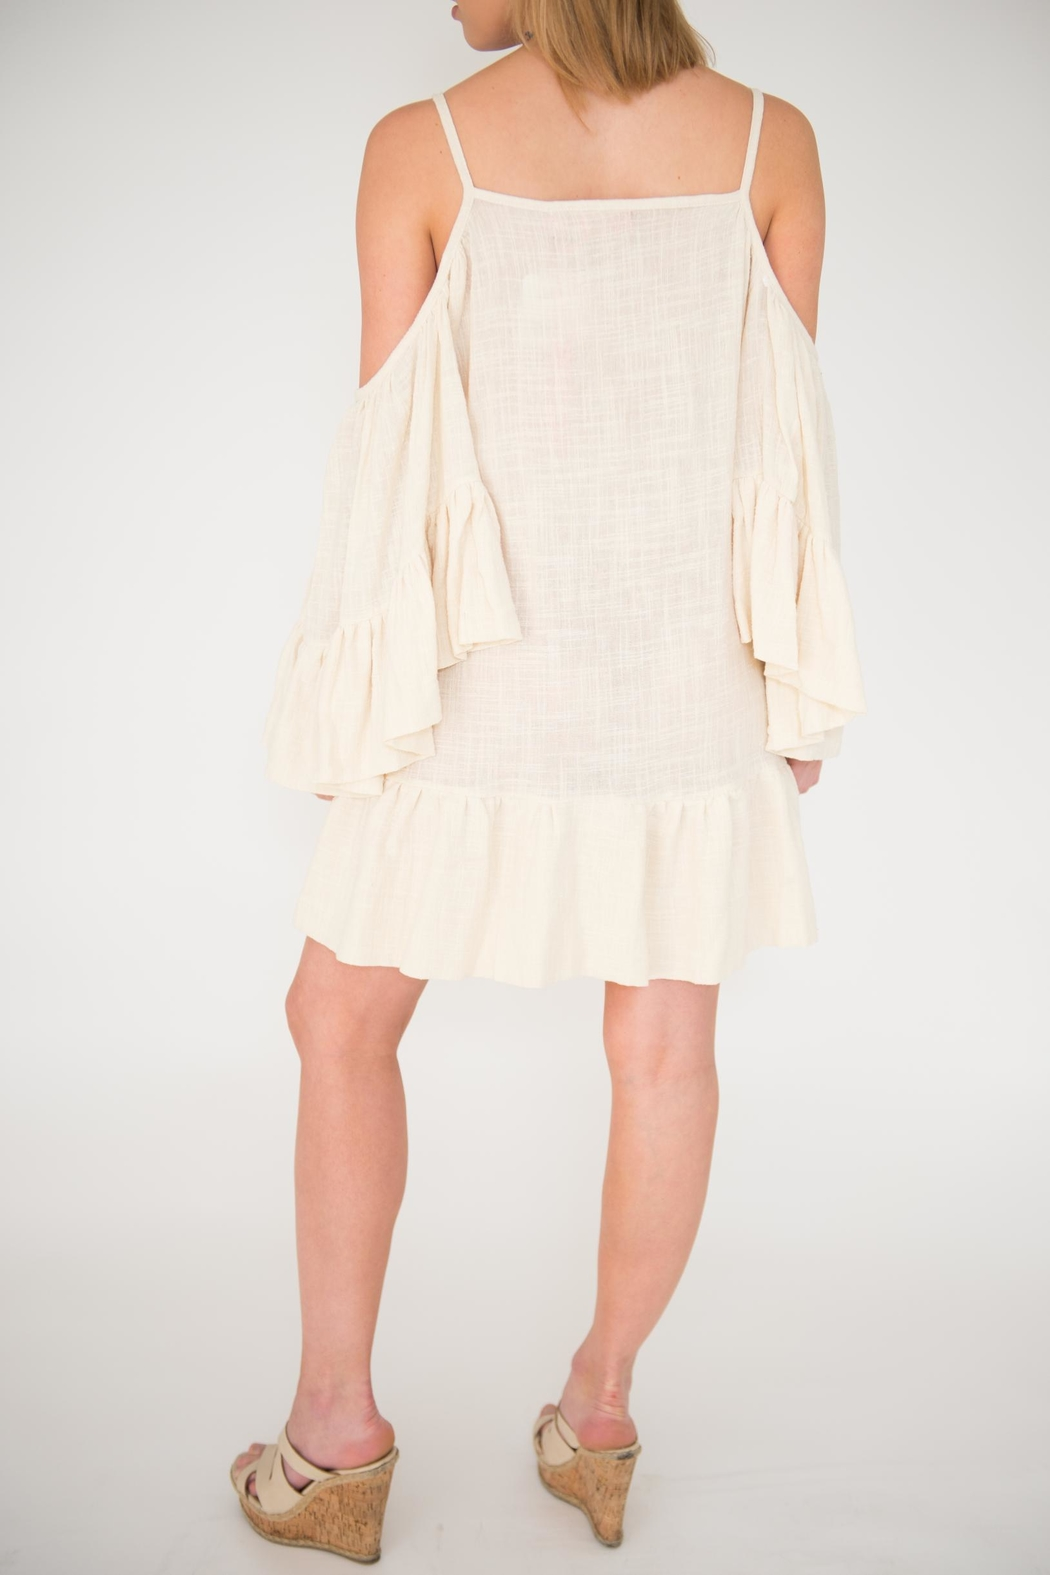 Macbeth Collection Lili Swing Dress - Front Full Image